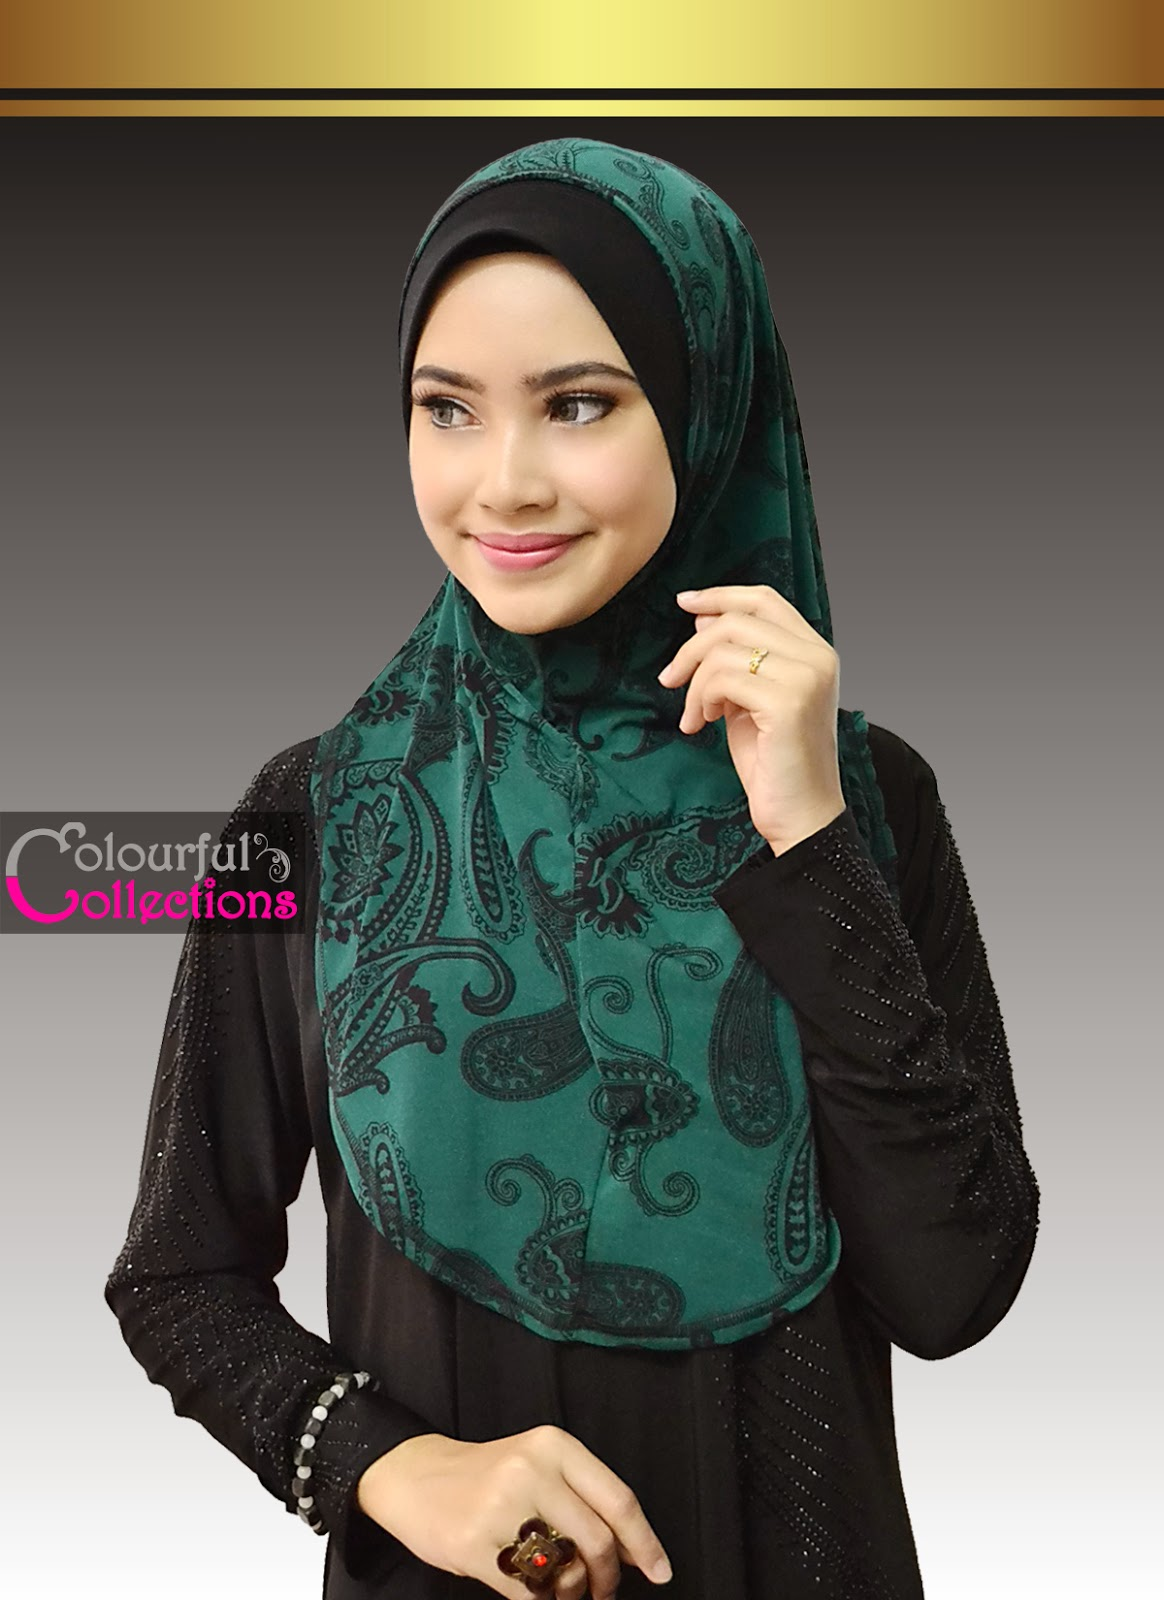 http://www.colourfulcollections.com/search/label/SYRIA%20ERYNA